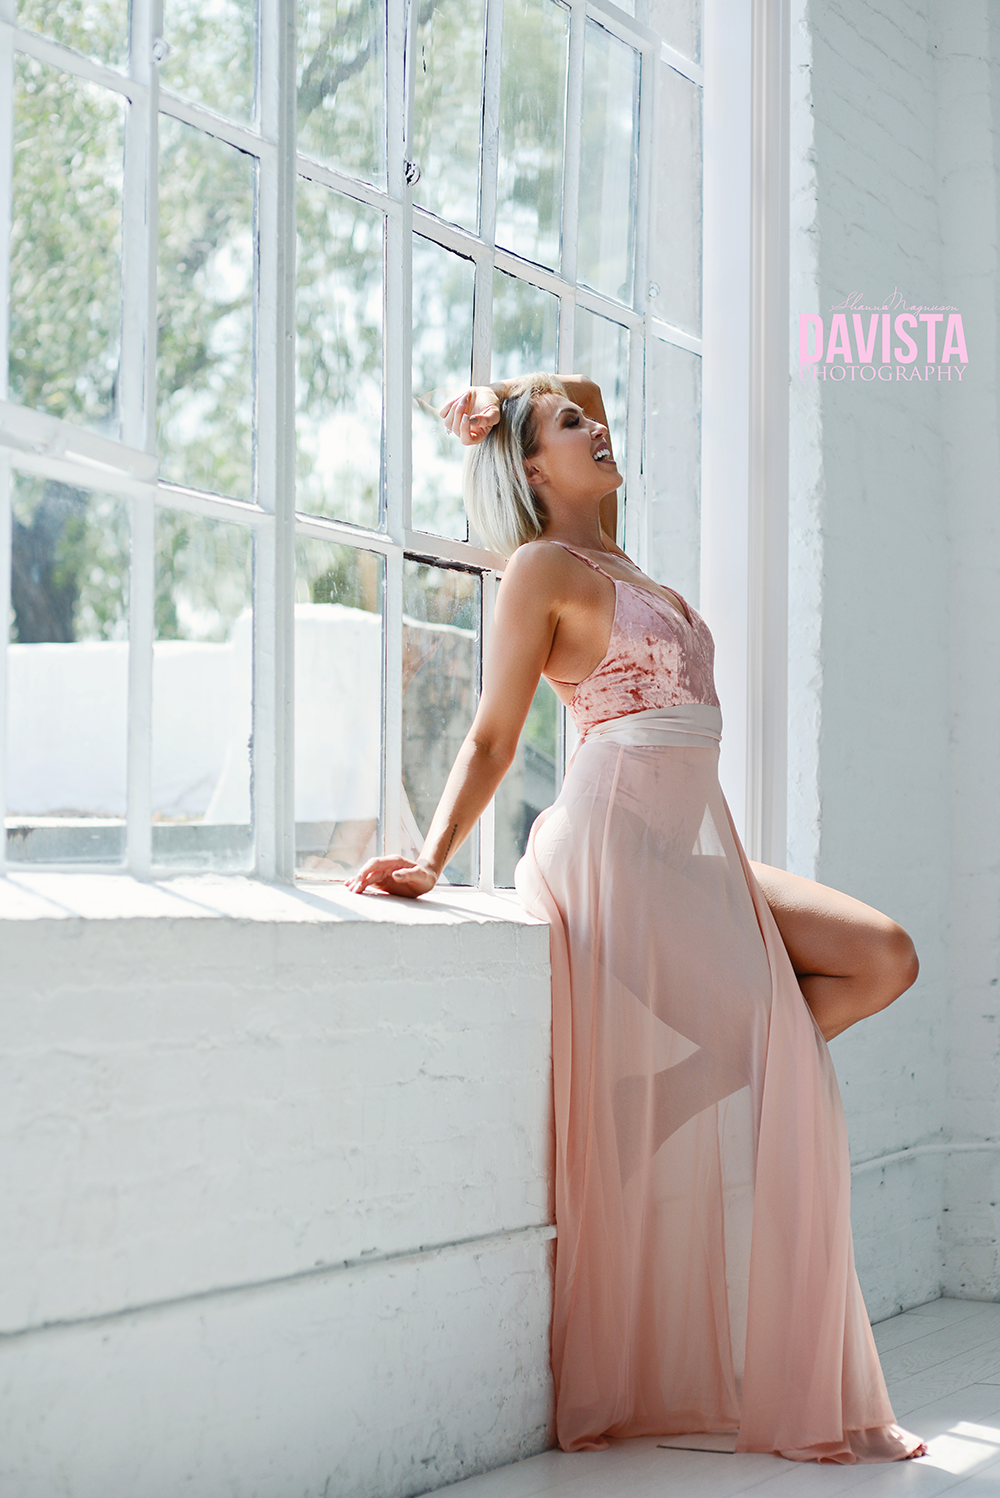 where to shop for your boudoir photoshoot